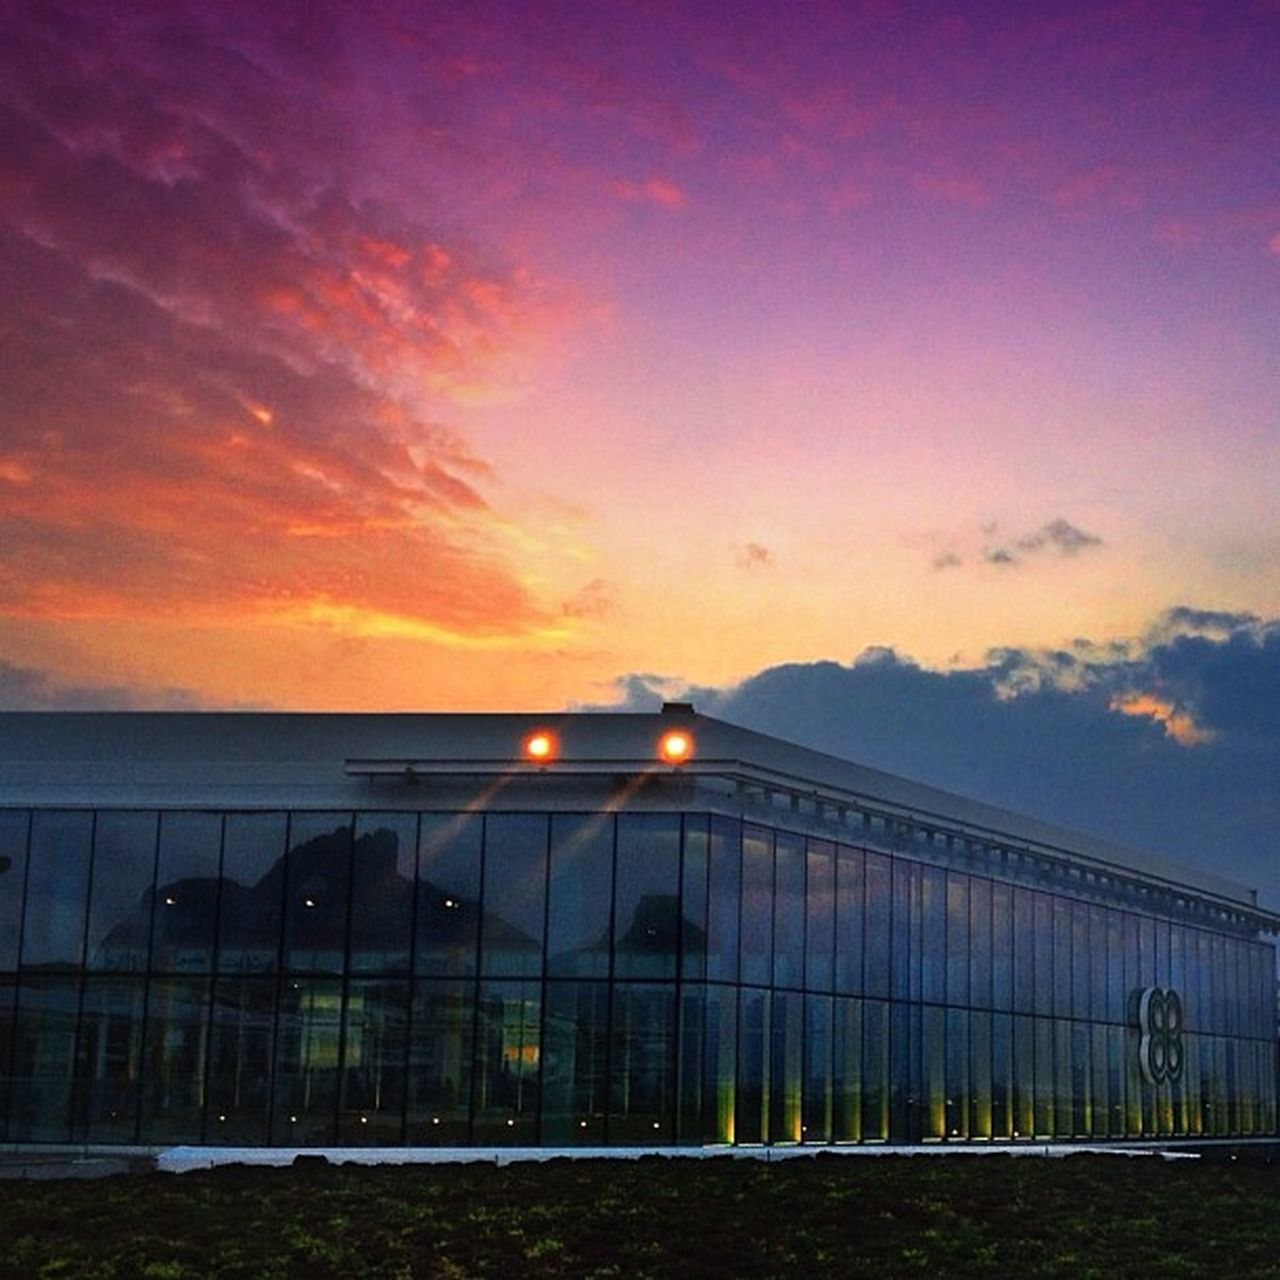 sky, architecture, built structure, building exterior, sunset, outdoors, no people, cloud - sky, illuminated, grass, nature, day